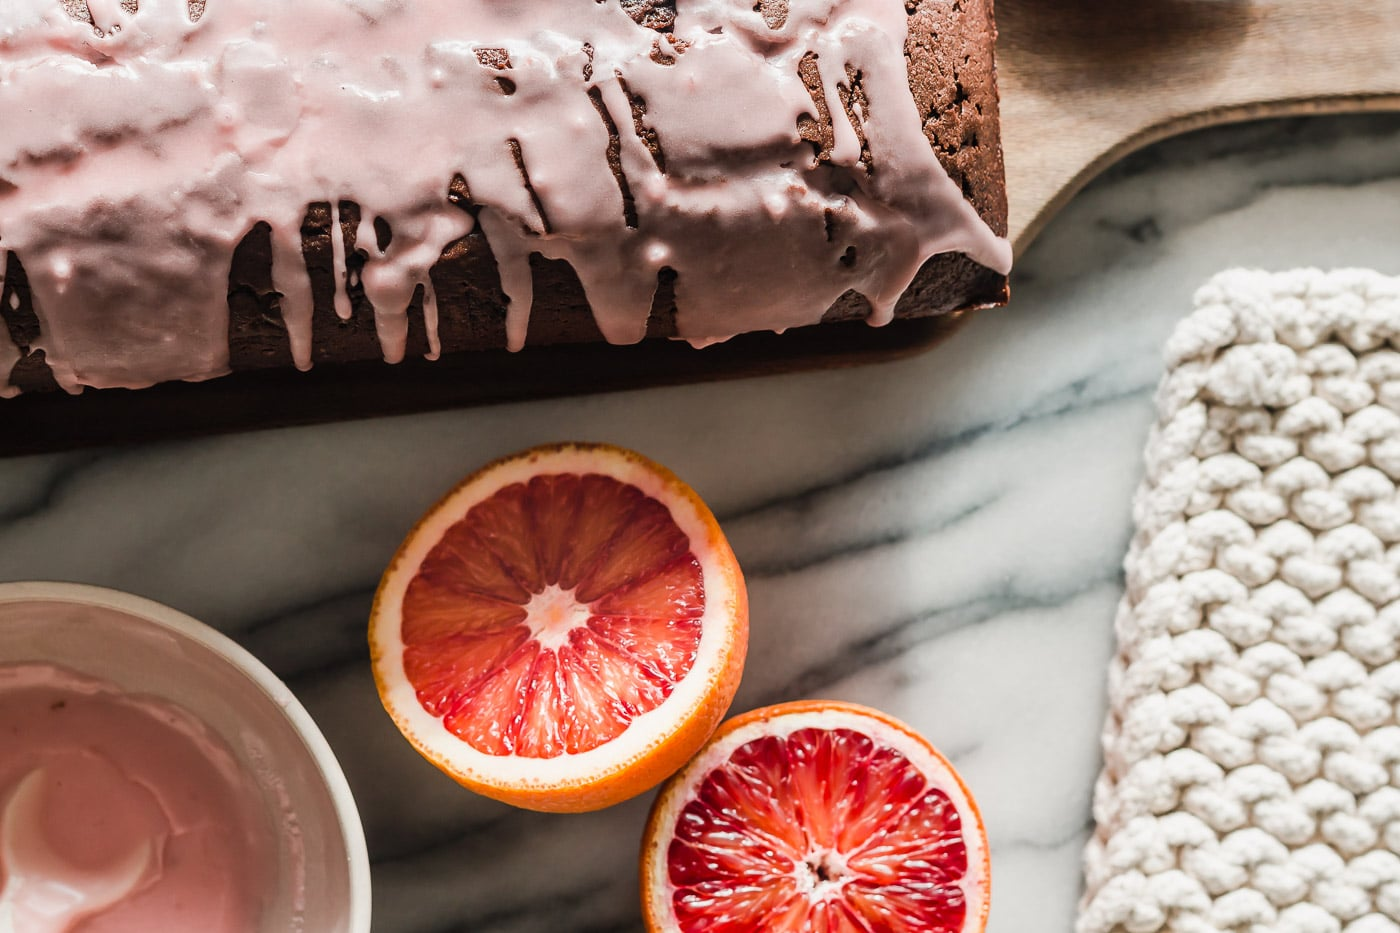 blood oranges and chocolate olive oil cake